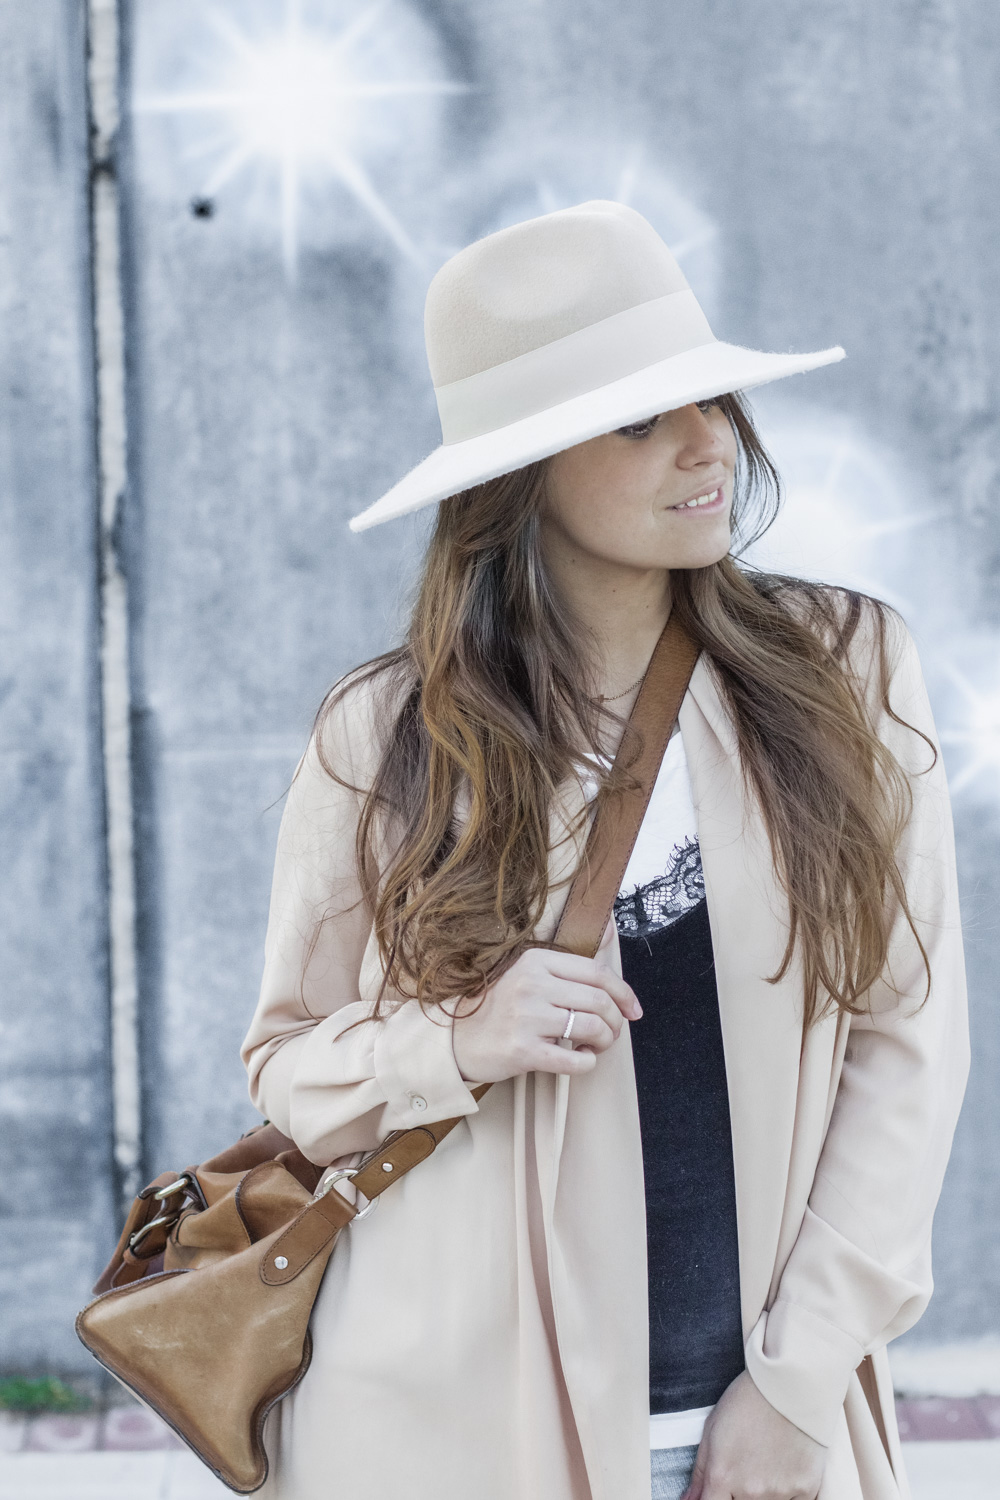 loreto_made_in_style_top_lencero_denim_trench_sombrero_blanco-26